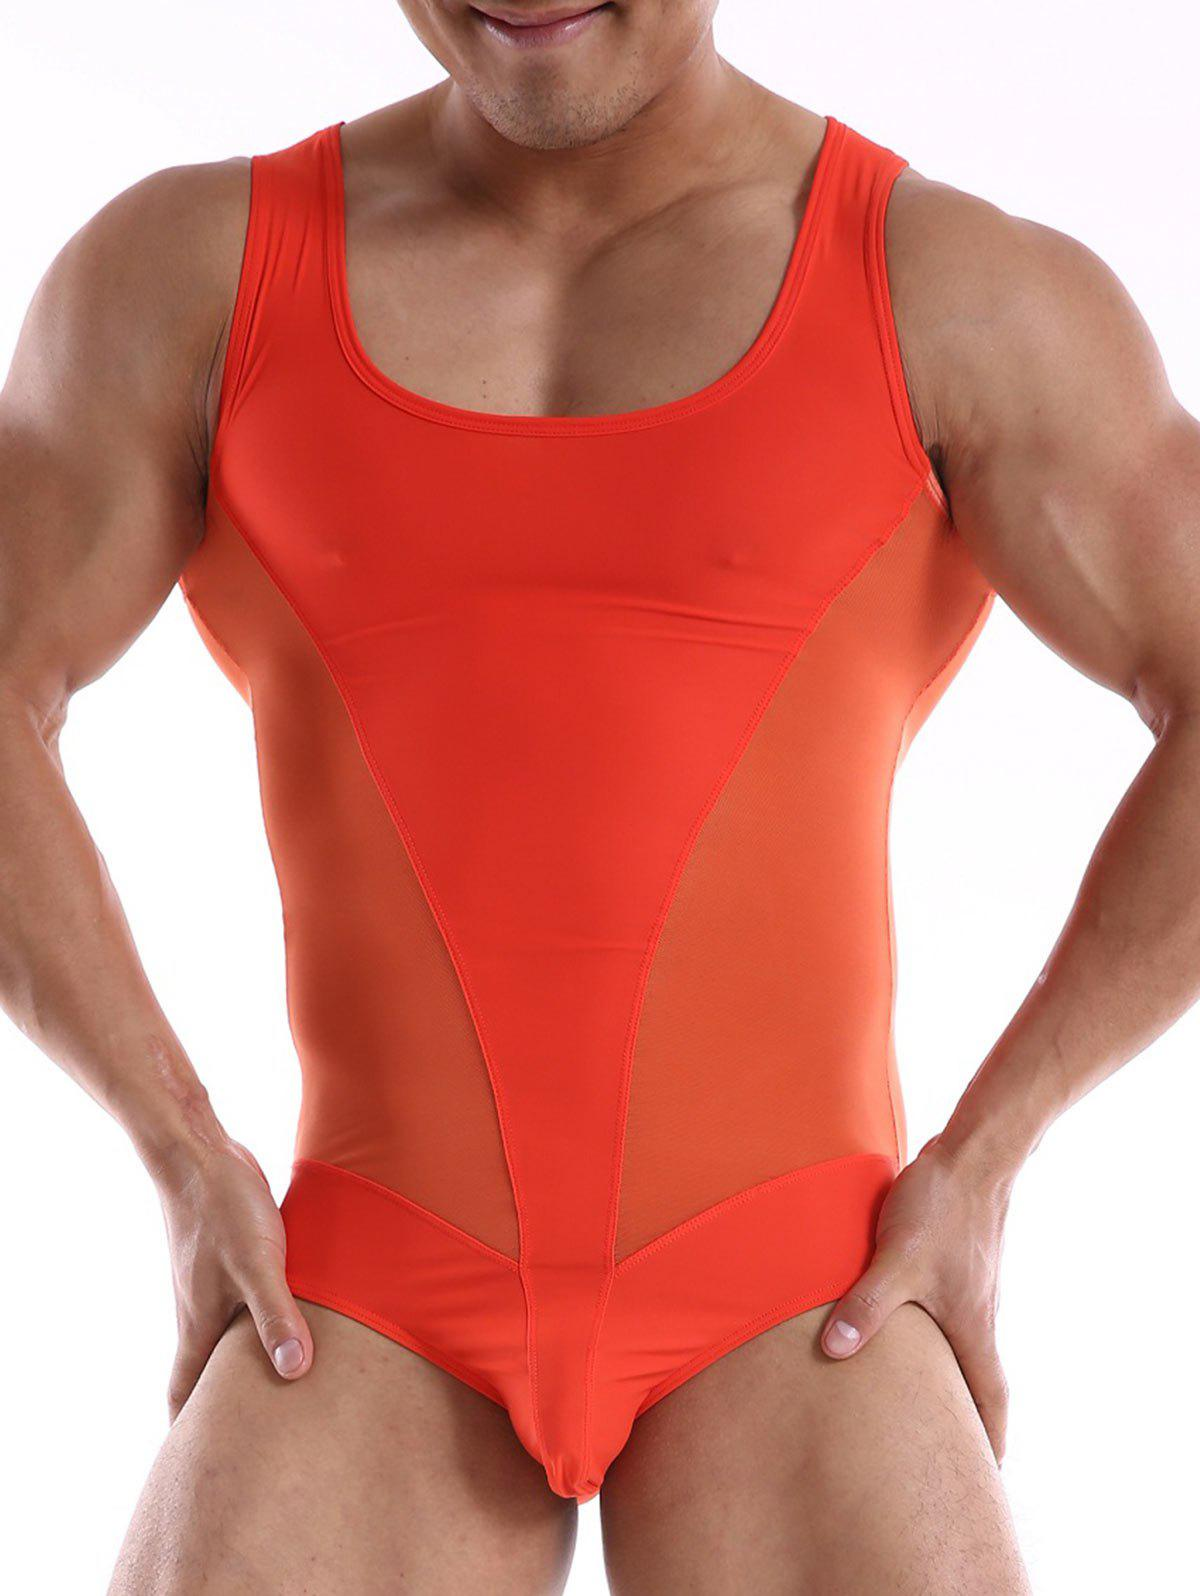 Tight Mesh Insert Tank Top Bodysuit - Tangerine M